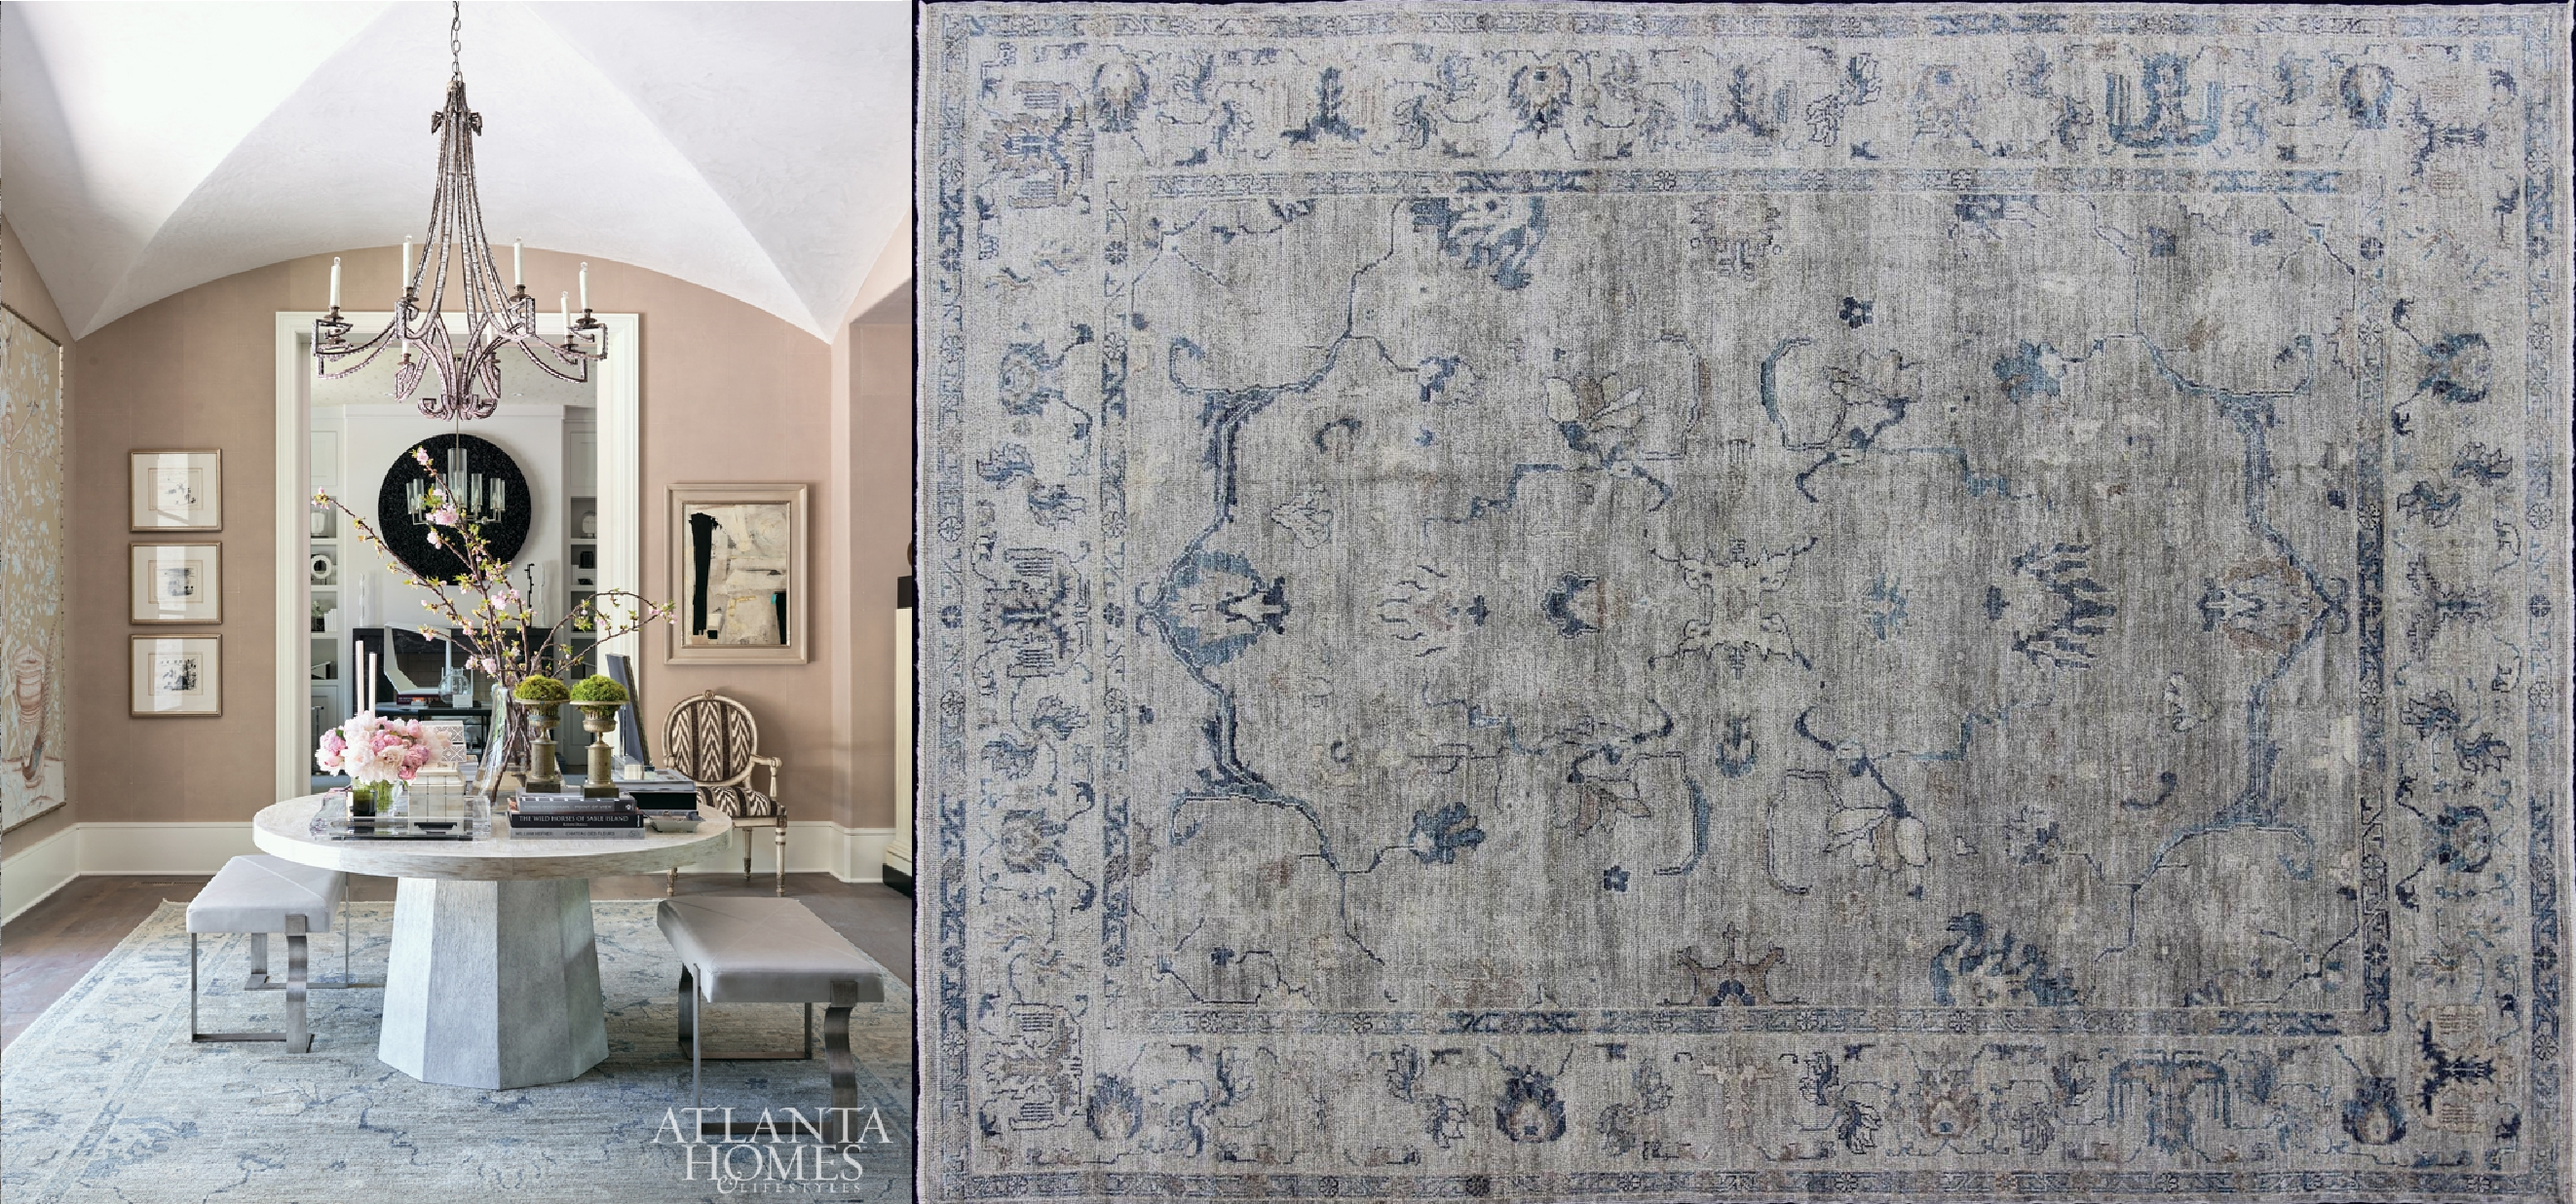 Beth Webb, Beth Webb Interiors, Atlanta Homes and Lifestyles Magazine, Southeastern Showhouse, Turkey, Turkish, Oushak, Rug, All-Over Design, Gray, Keivan Woven Arts, Sitting Room, Interior Design